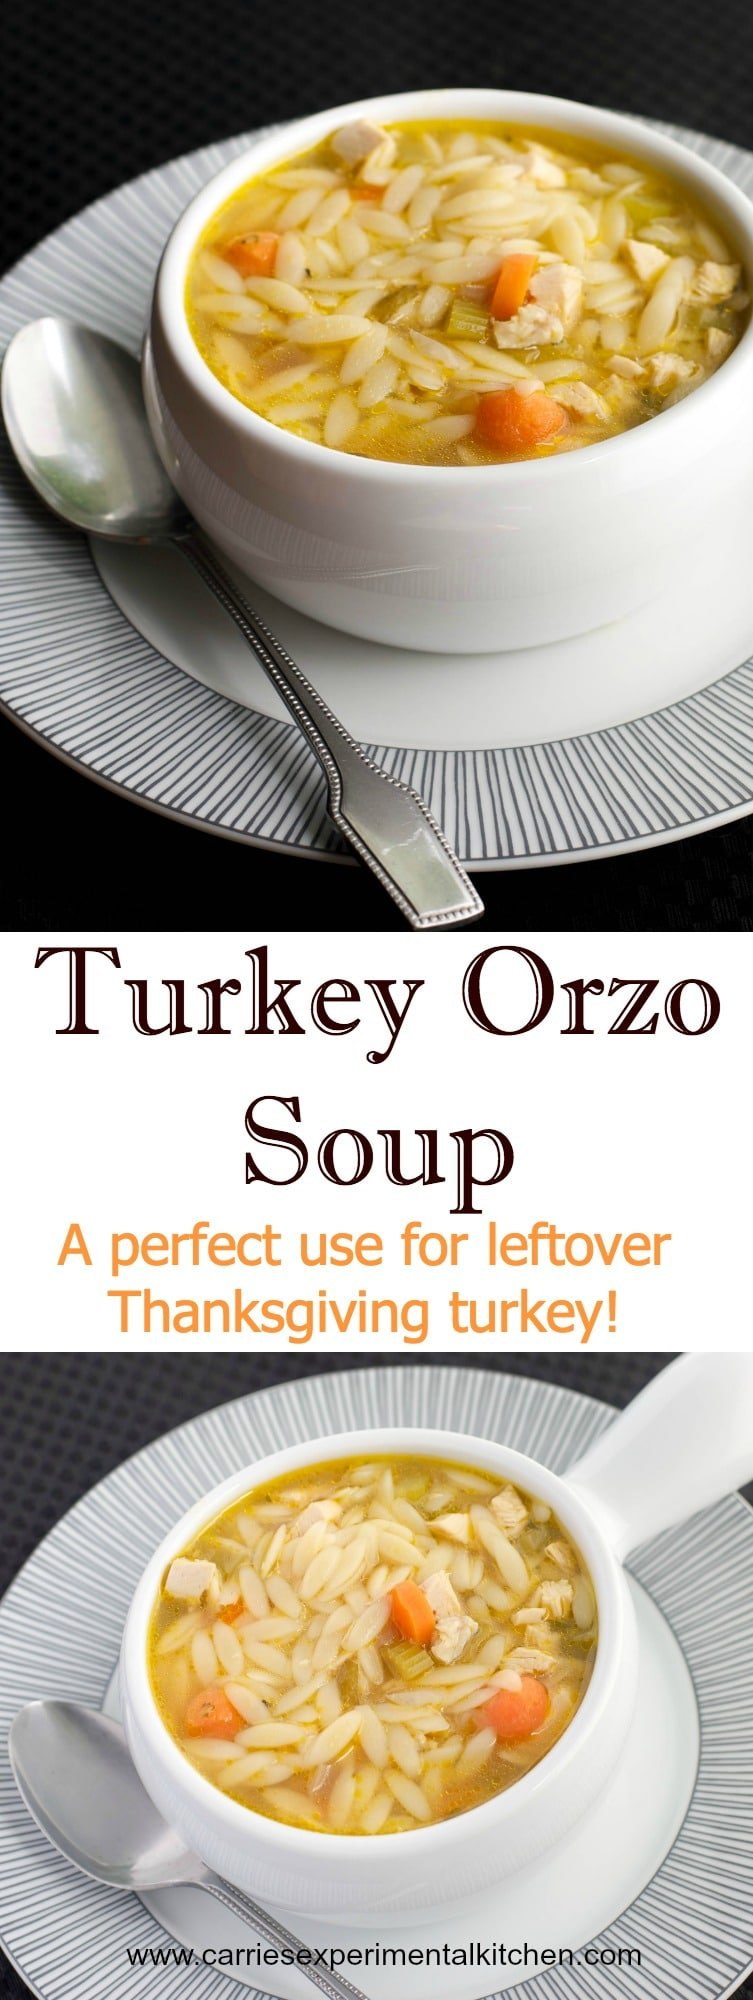 This Turkey Orzo Soup is a perfect use for leftover Thanksgiving turkey. Try substituting Sunday's leftover roasted chicken too!